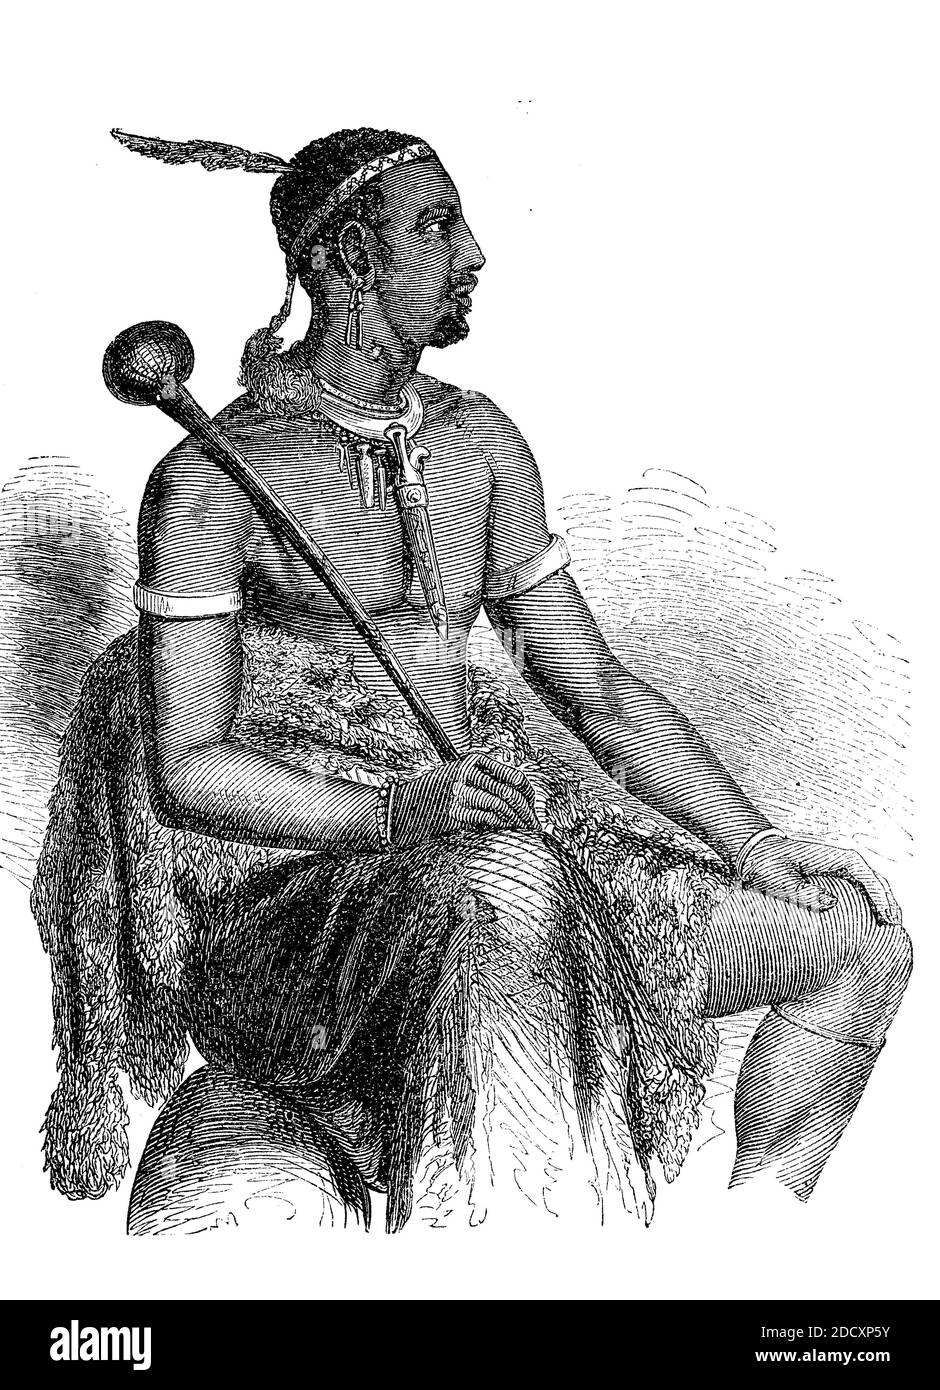 Moshesh, chief of the Bassuto Indians from South Africa, Lesotho, 1880  /  Moschesch, Häuptling der Bassuto Indianer aus Südafrika, Lesotho, 1880, Historisch, historical, digital improved reproduction of an original from the 19th century / digitale Reproduktion einer Originalvorlage aus dem 19. Jahrhundert, Stock Photo